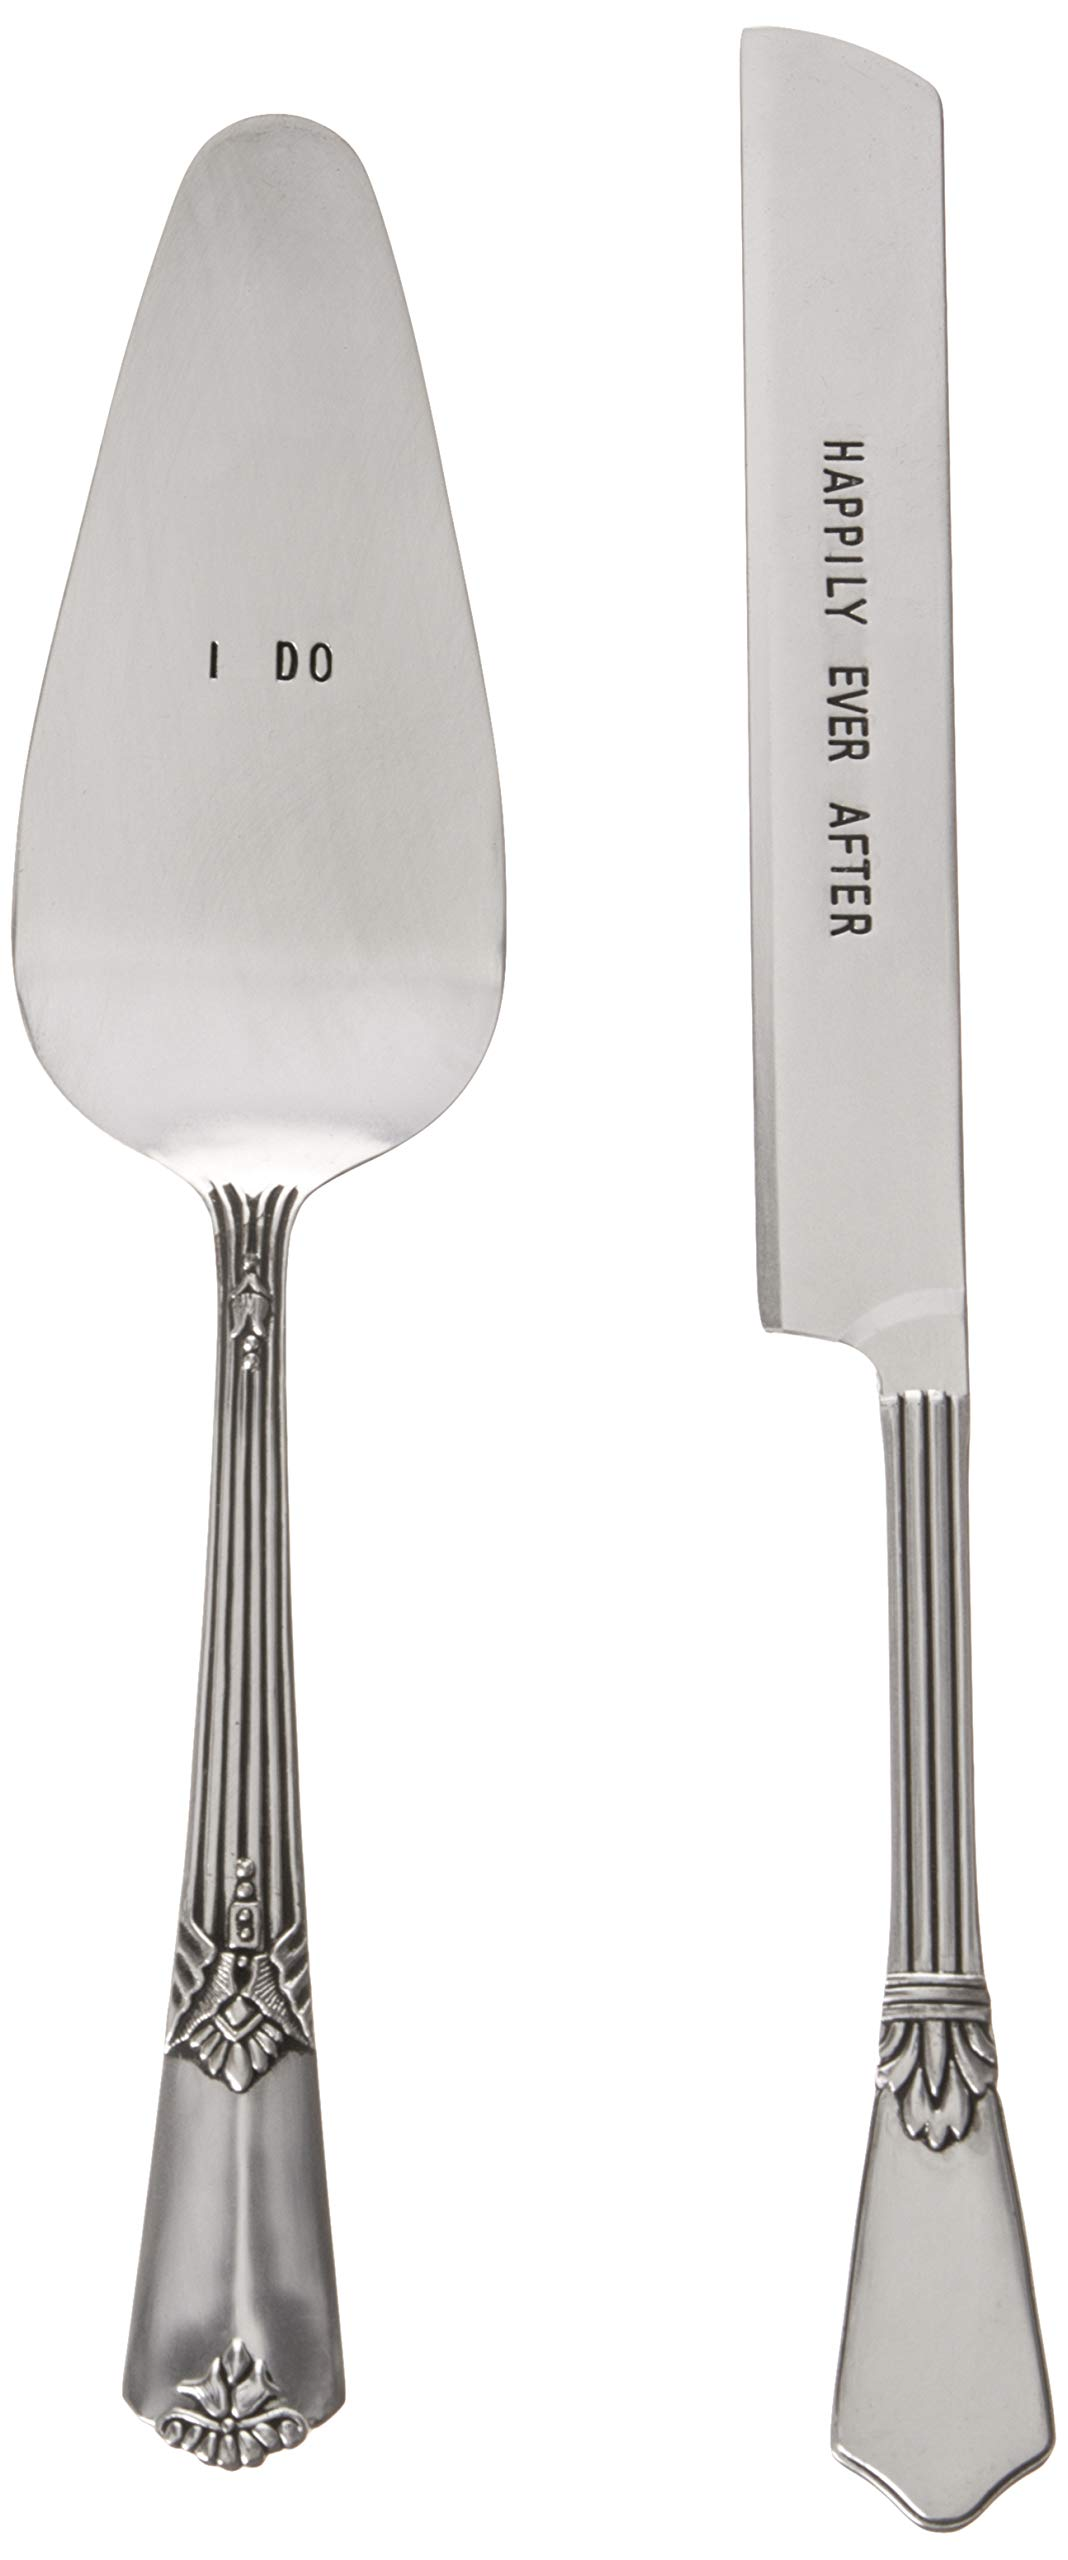 Mud Pie 4635002 Wedding Cake and Knife Serving Set, Silver by Mud Pie